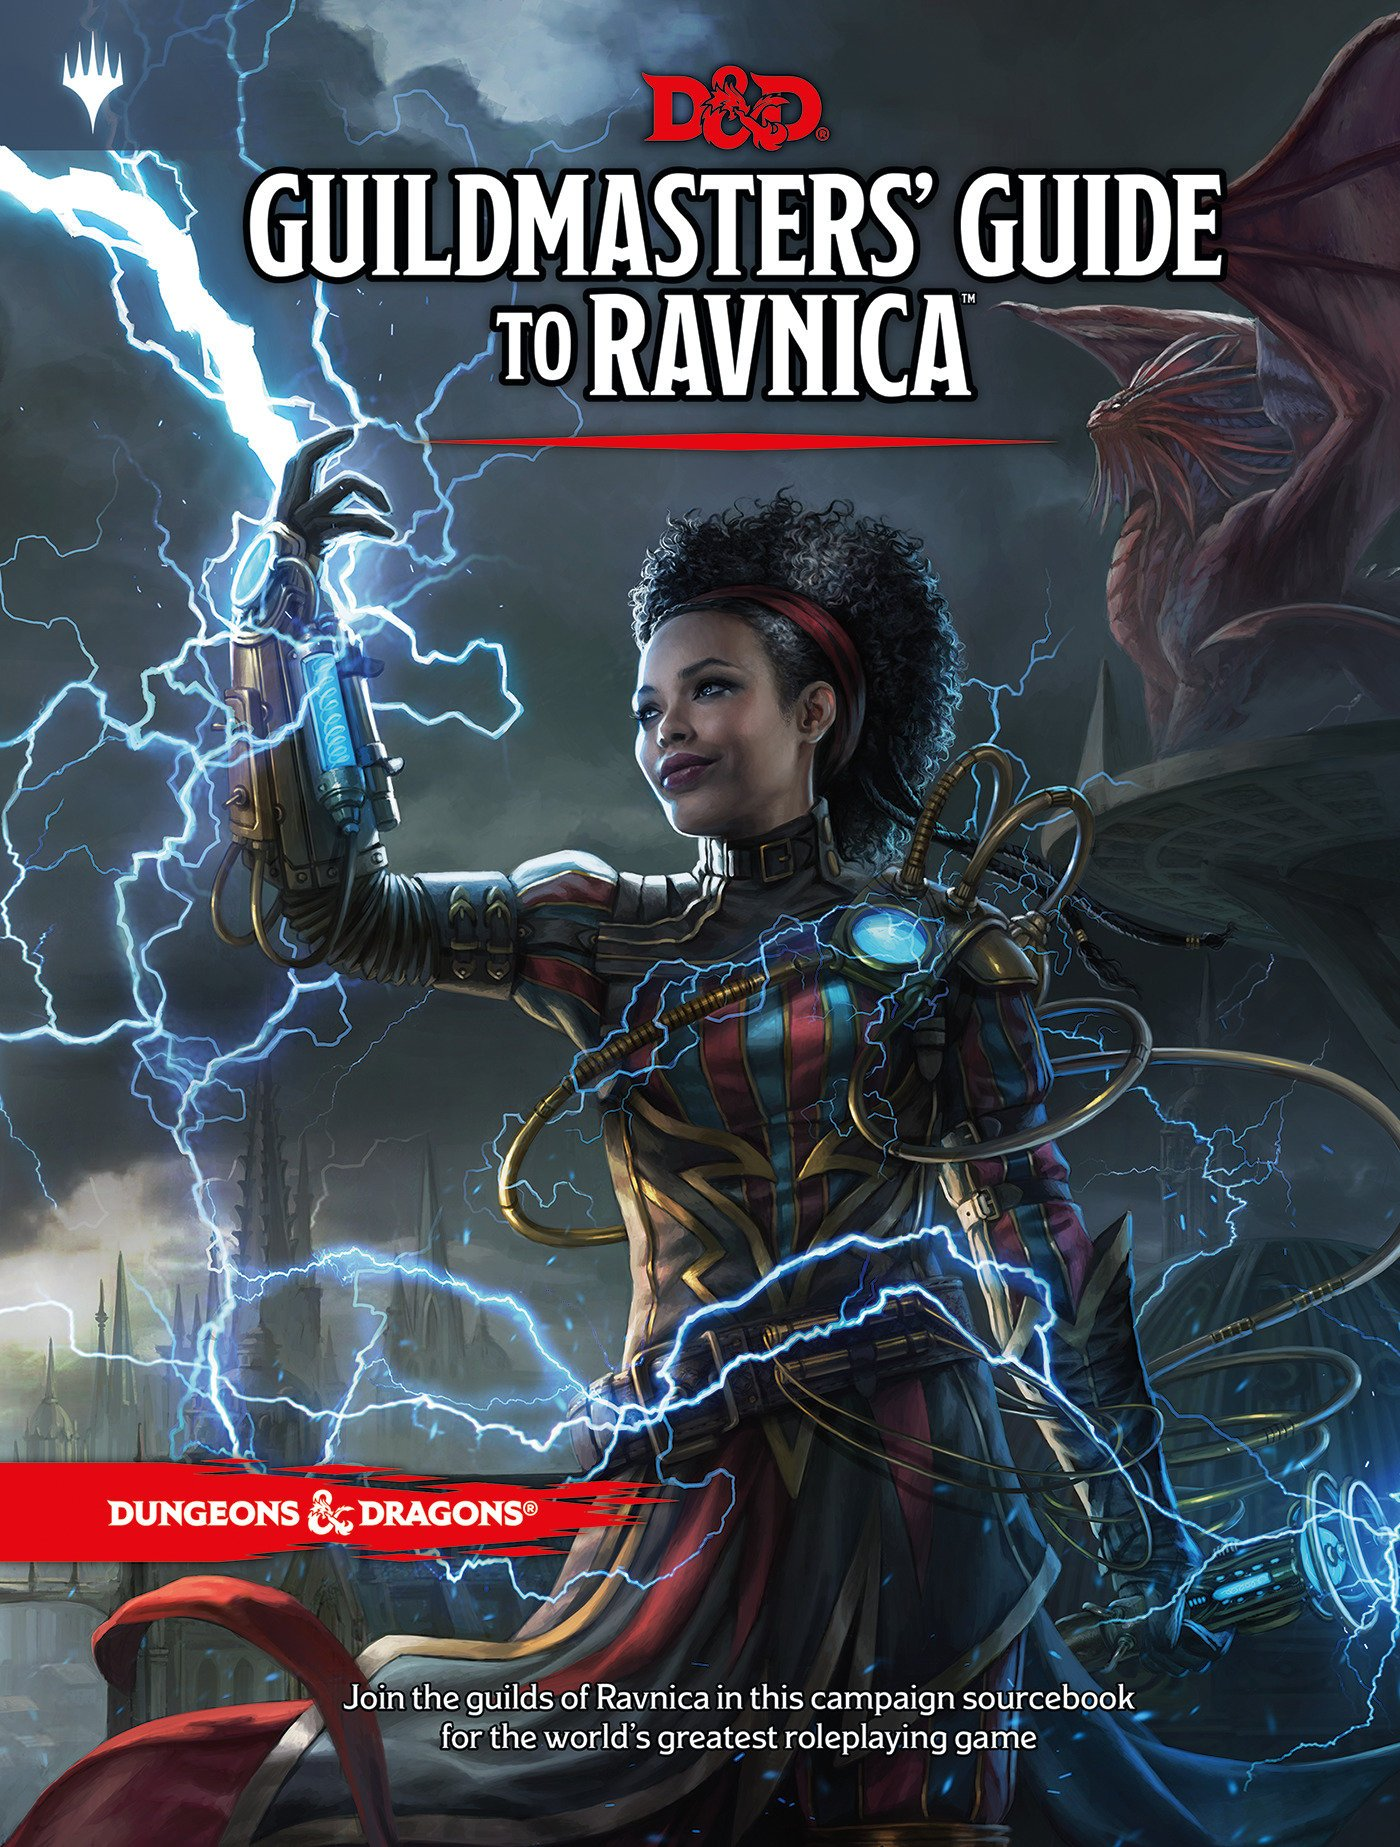 https://d3idt3y1vhsqn9.cloudfront.net/wp-content/uploads/2018/07/22181924/Guildmasters-Guide-to-Ravnica.jpg